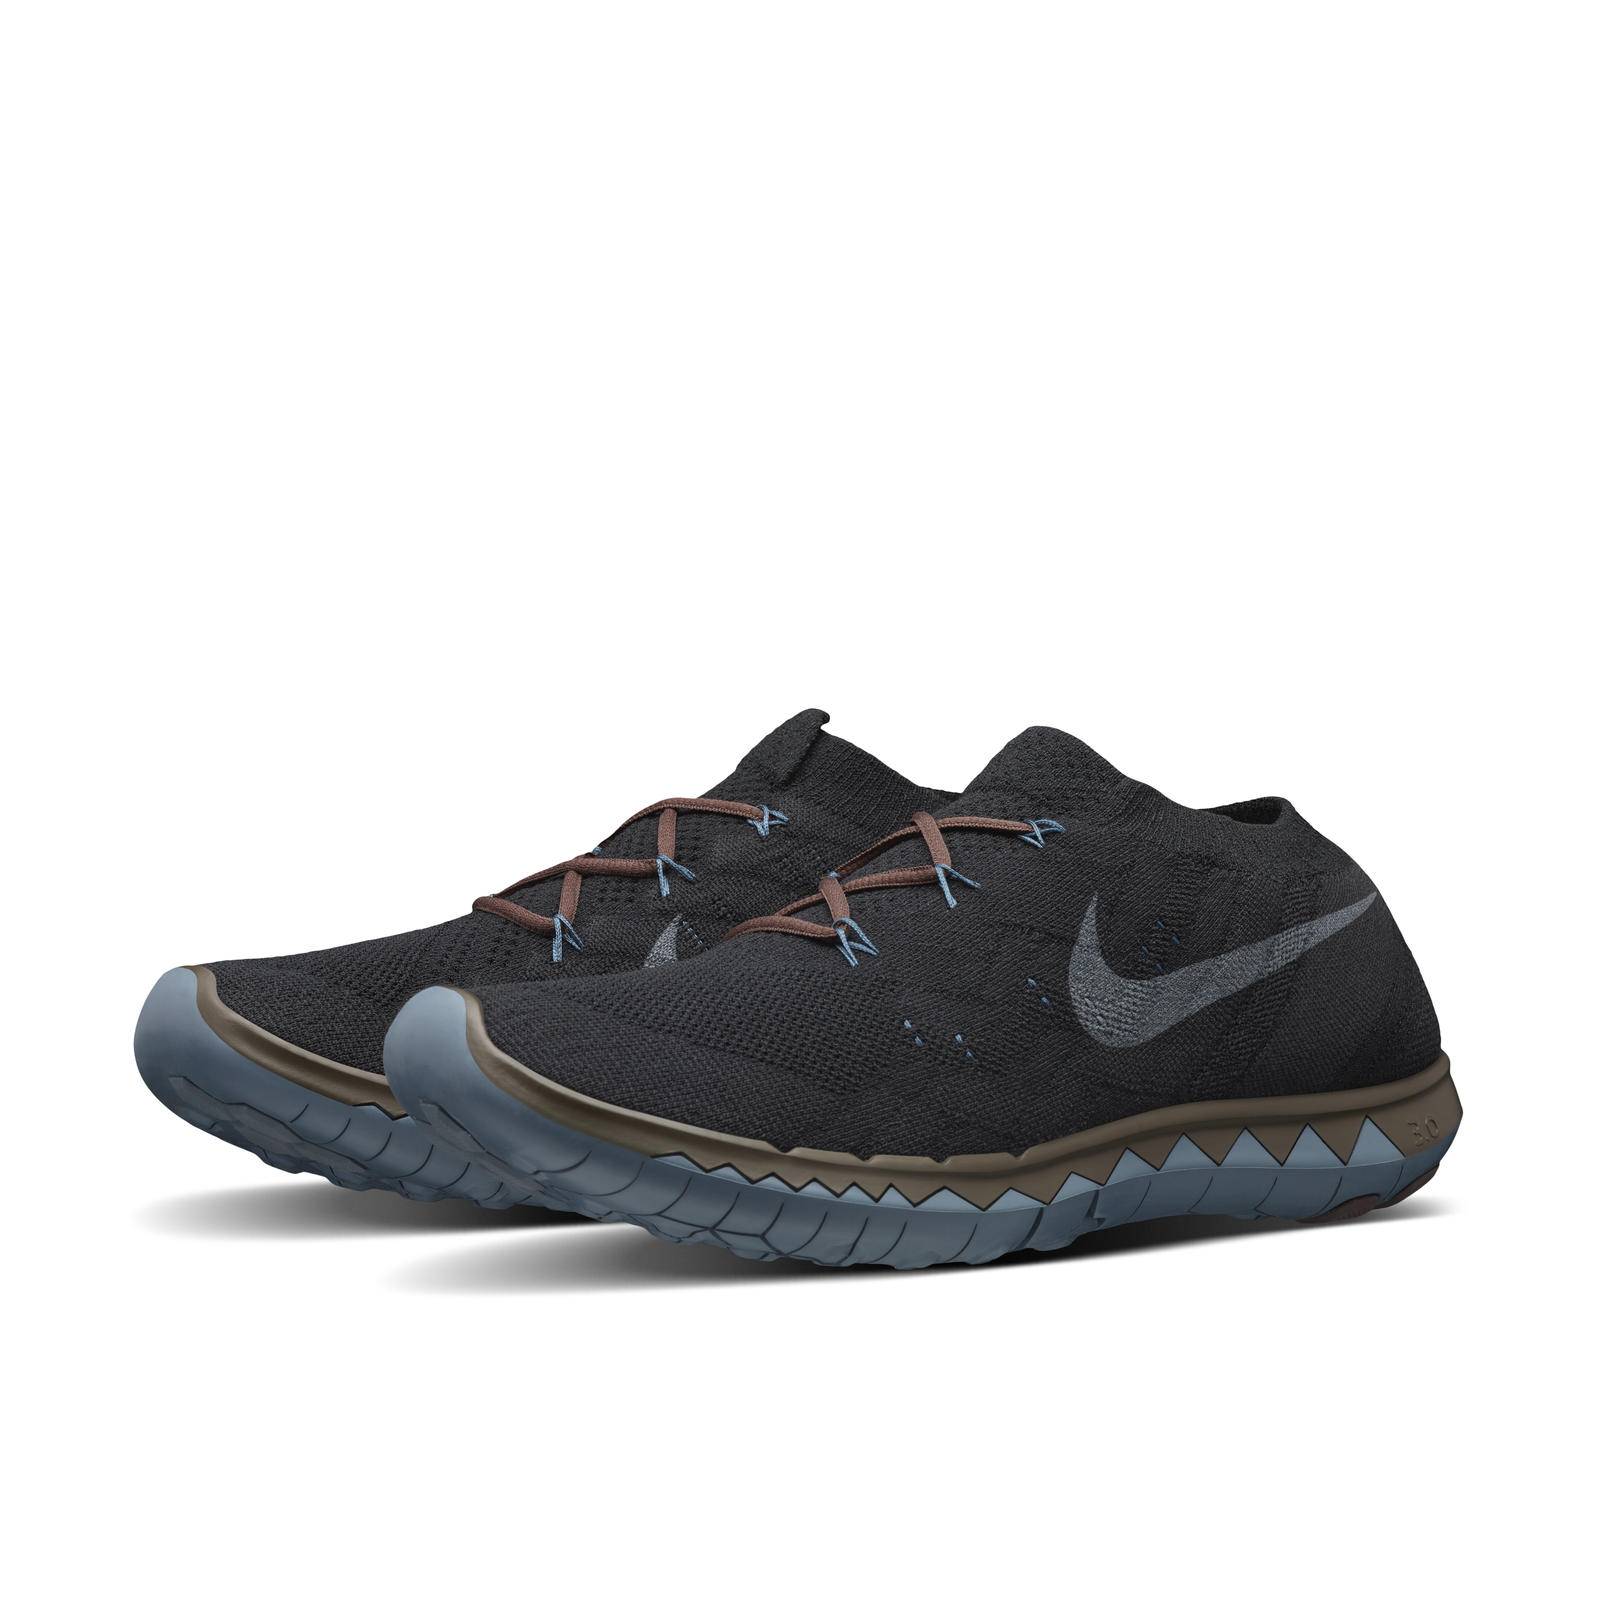 1600x1600 Redefining Running Silhouettes The Holiday 2015 Nikelab X